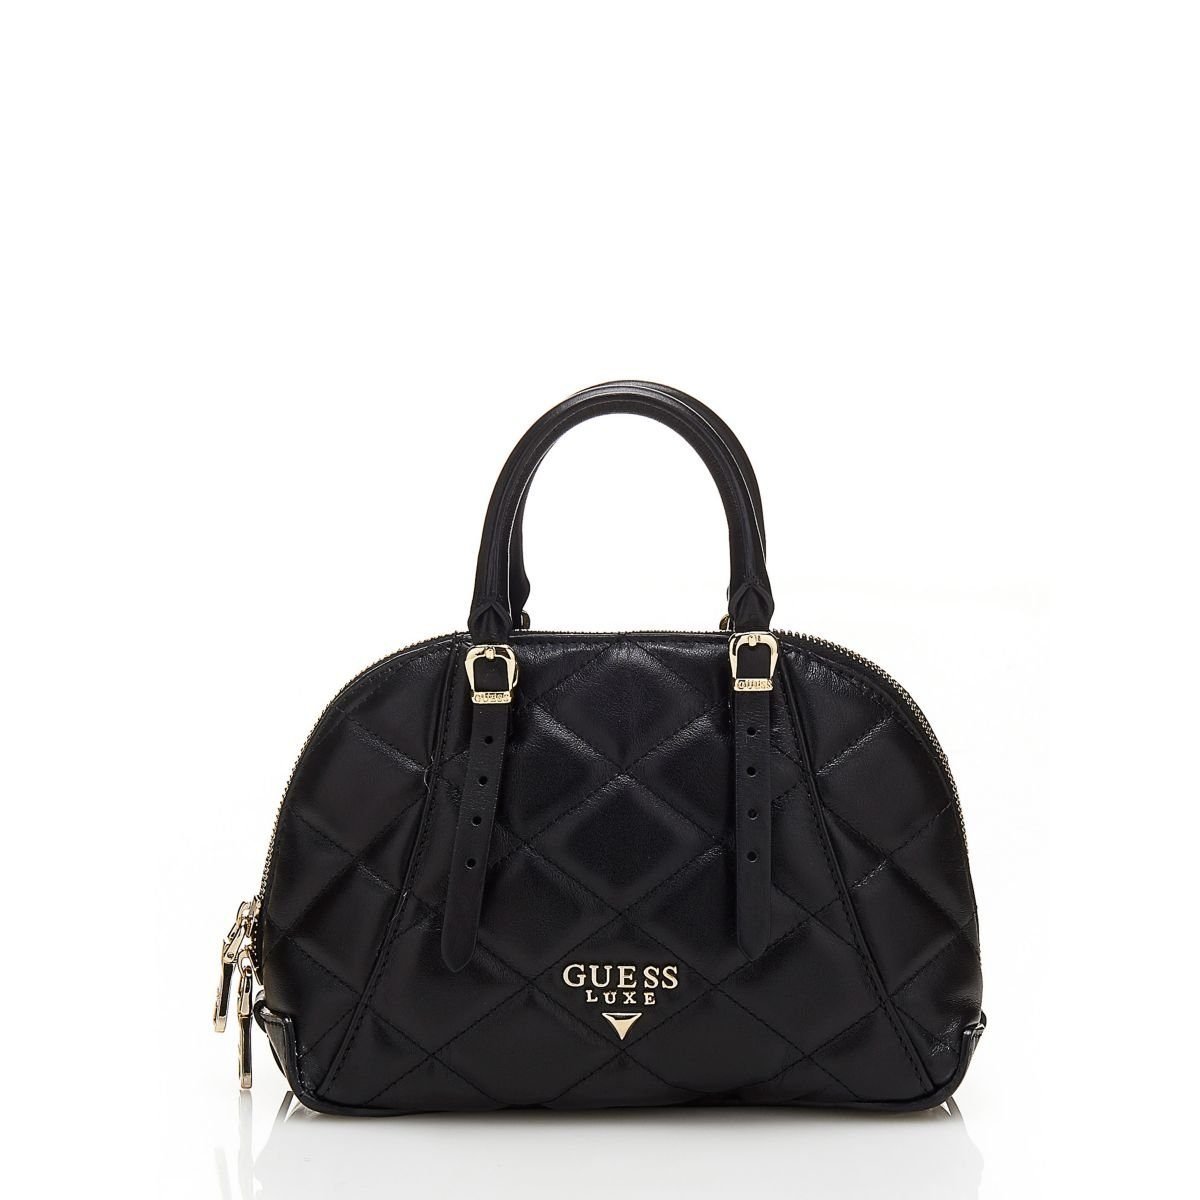 Guess MINI-BAULETTO LADY LUXE AUS LEDER